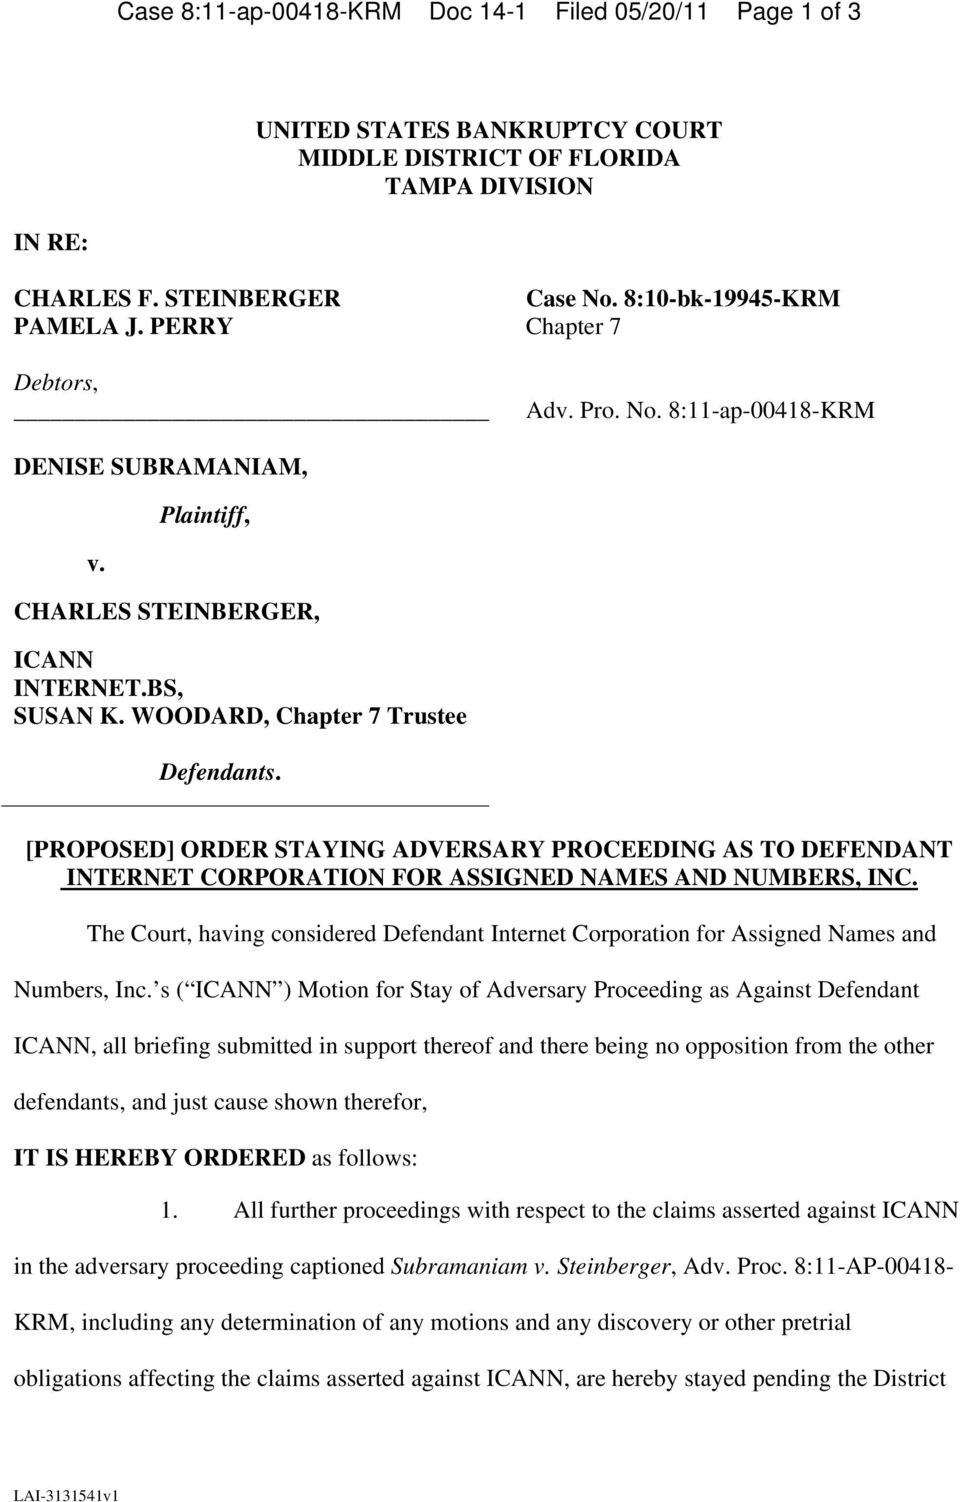 [PROPOSED] ORDER STAYING ADVERSARY PROCEEDING AS TO DEFENDANT INTERNET CORPORATION FOR ASSIGNED NAMES AND NUMBERS, INC.